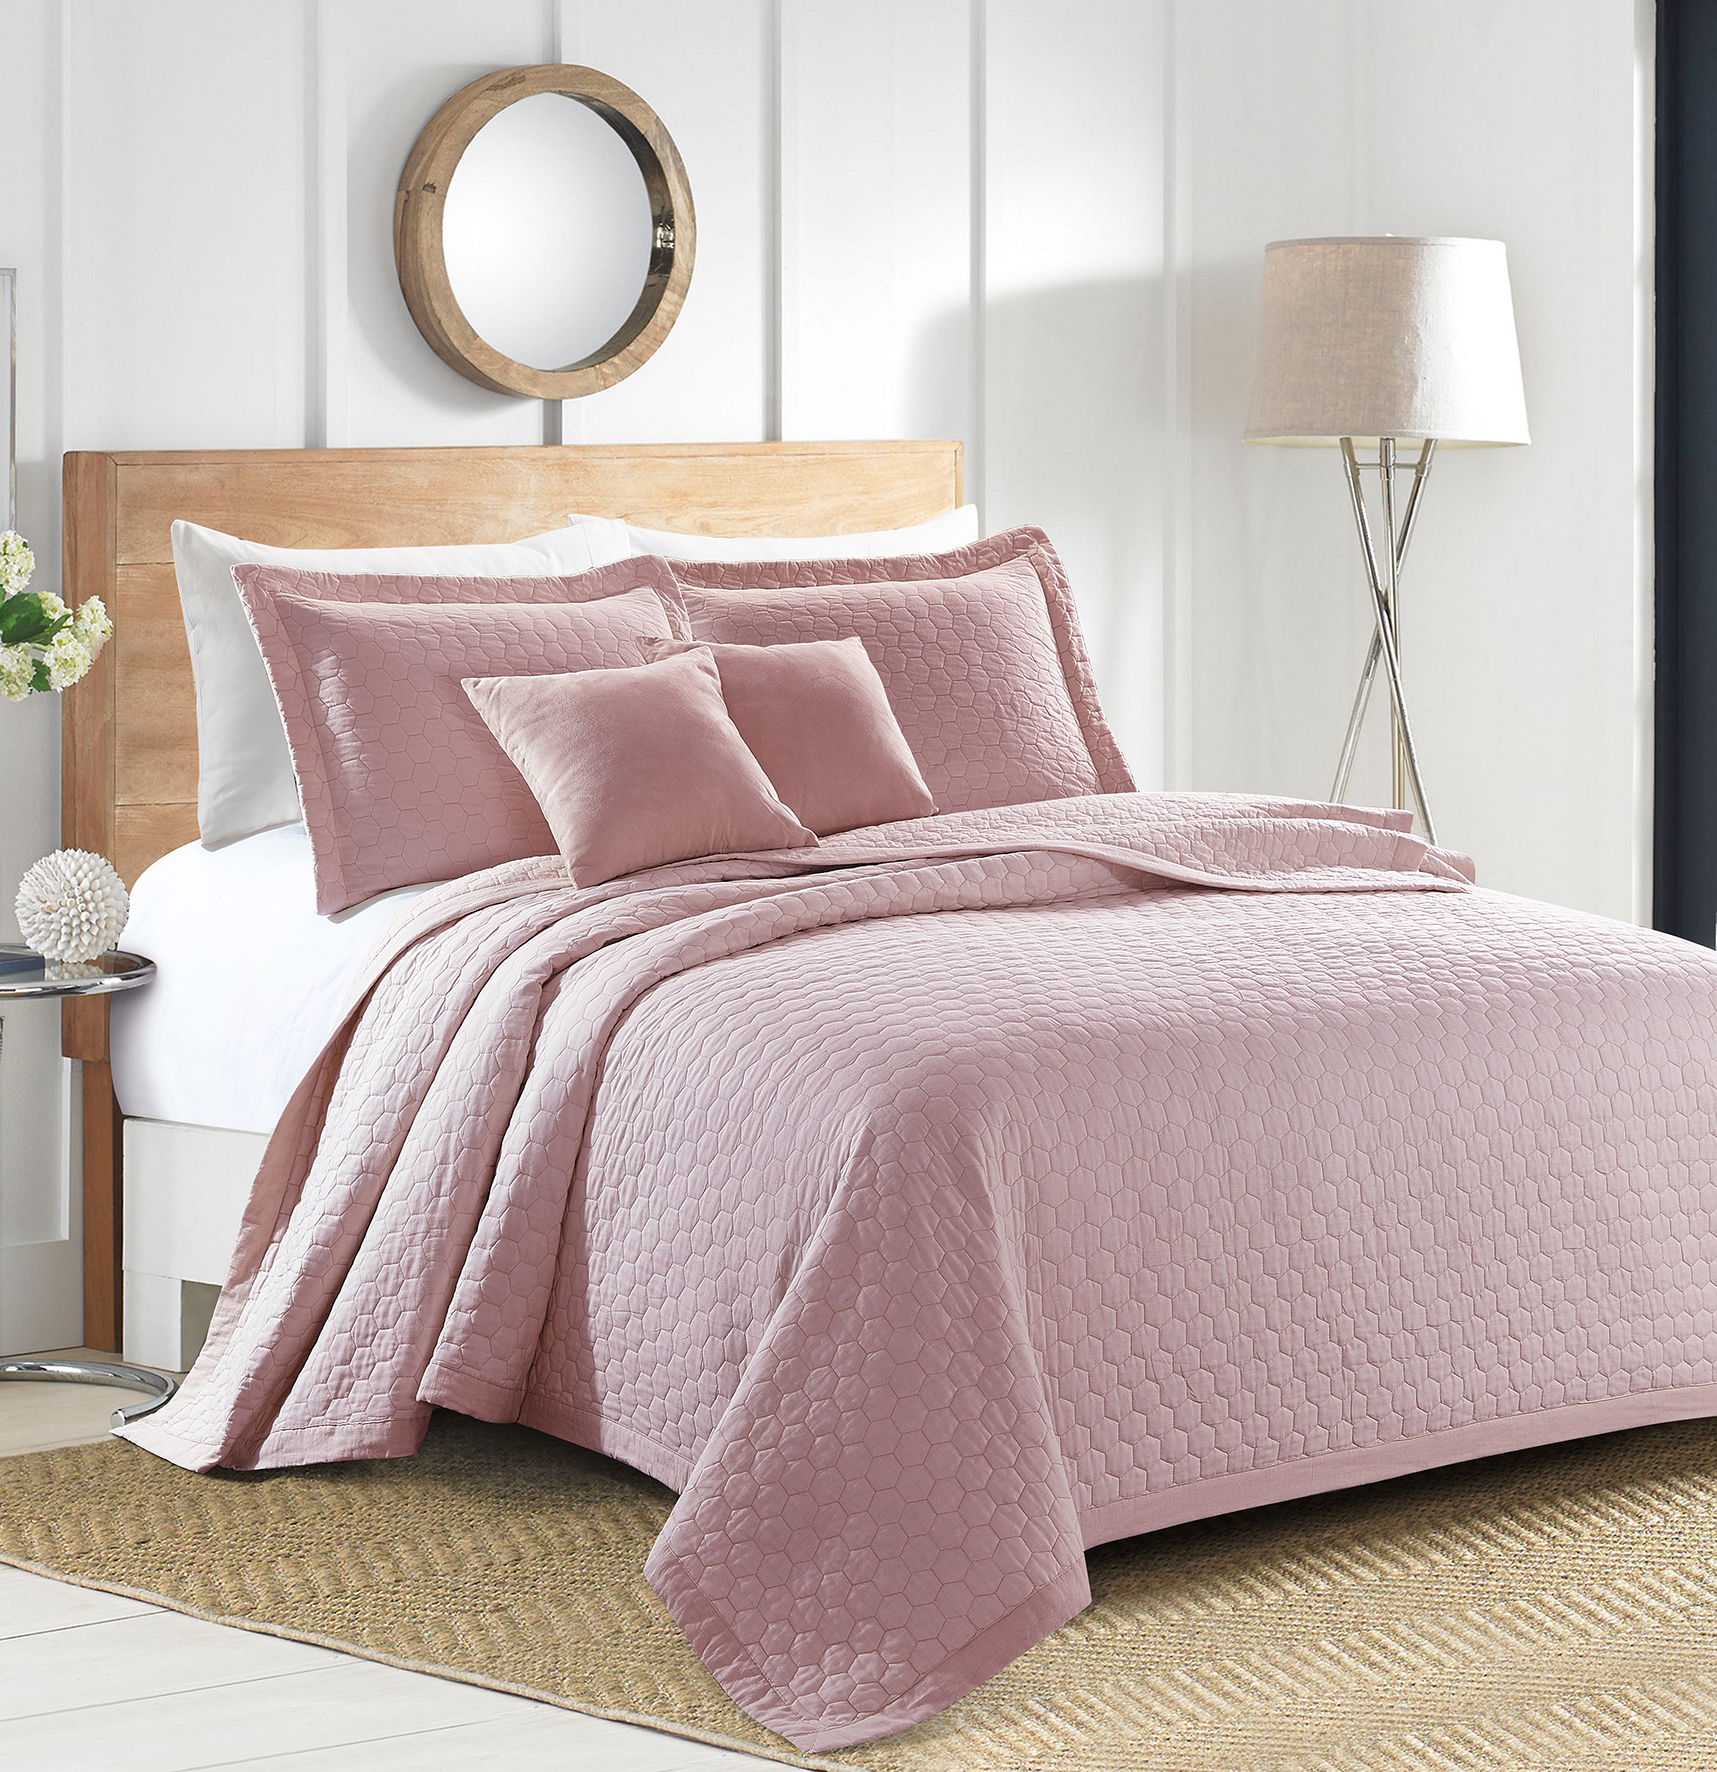 Sherry Kline Rombo Embroidered 3-piece King Pink Cotton Quilt Set